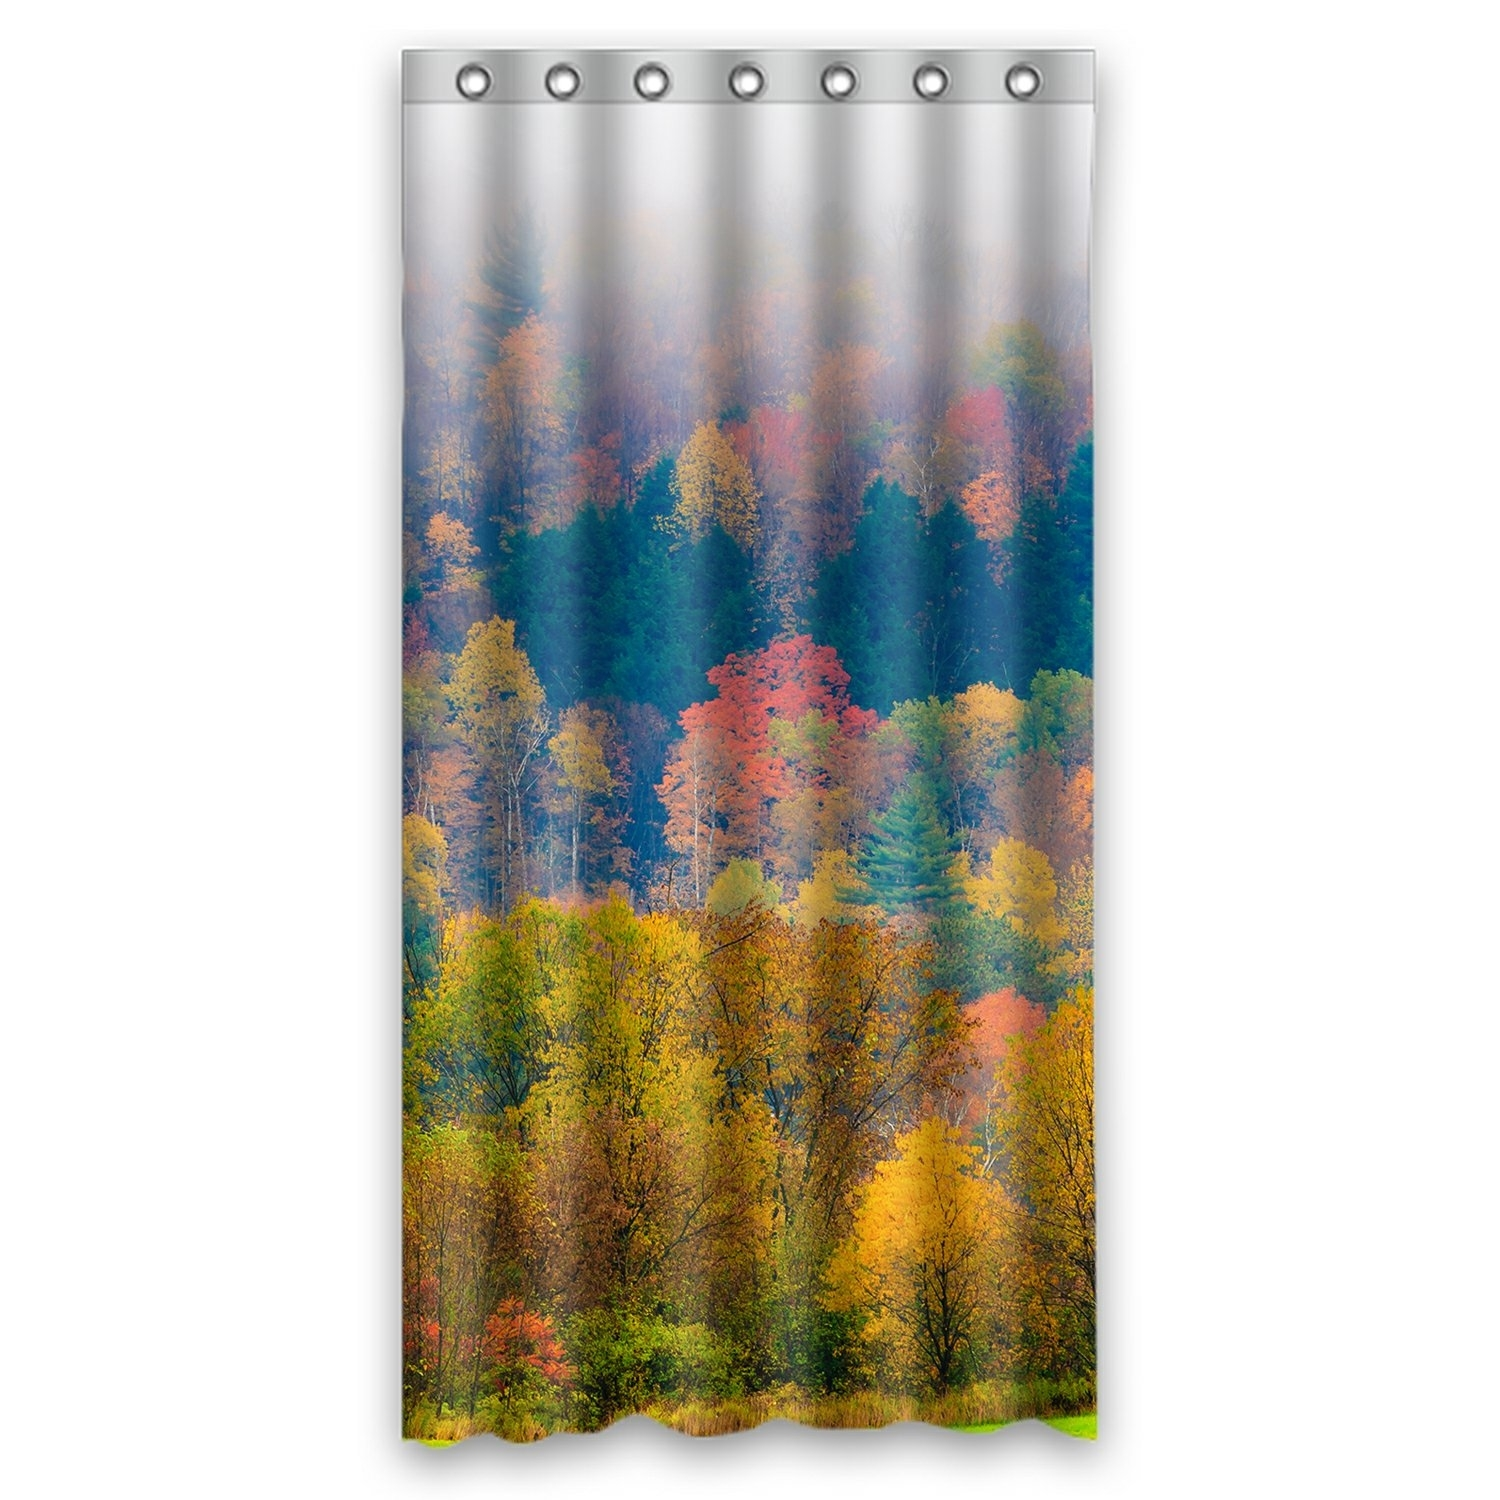 Forest Landscape Shower Curtain, Field of Trees during Fall Foliage Shower Curtain 36x72 inch